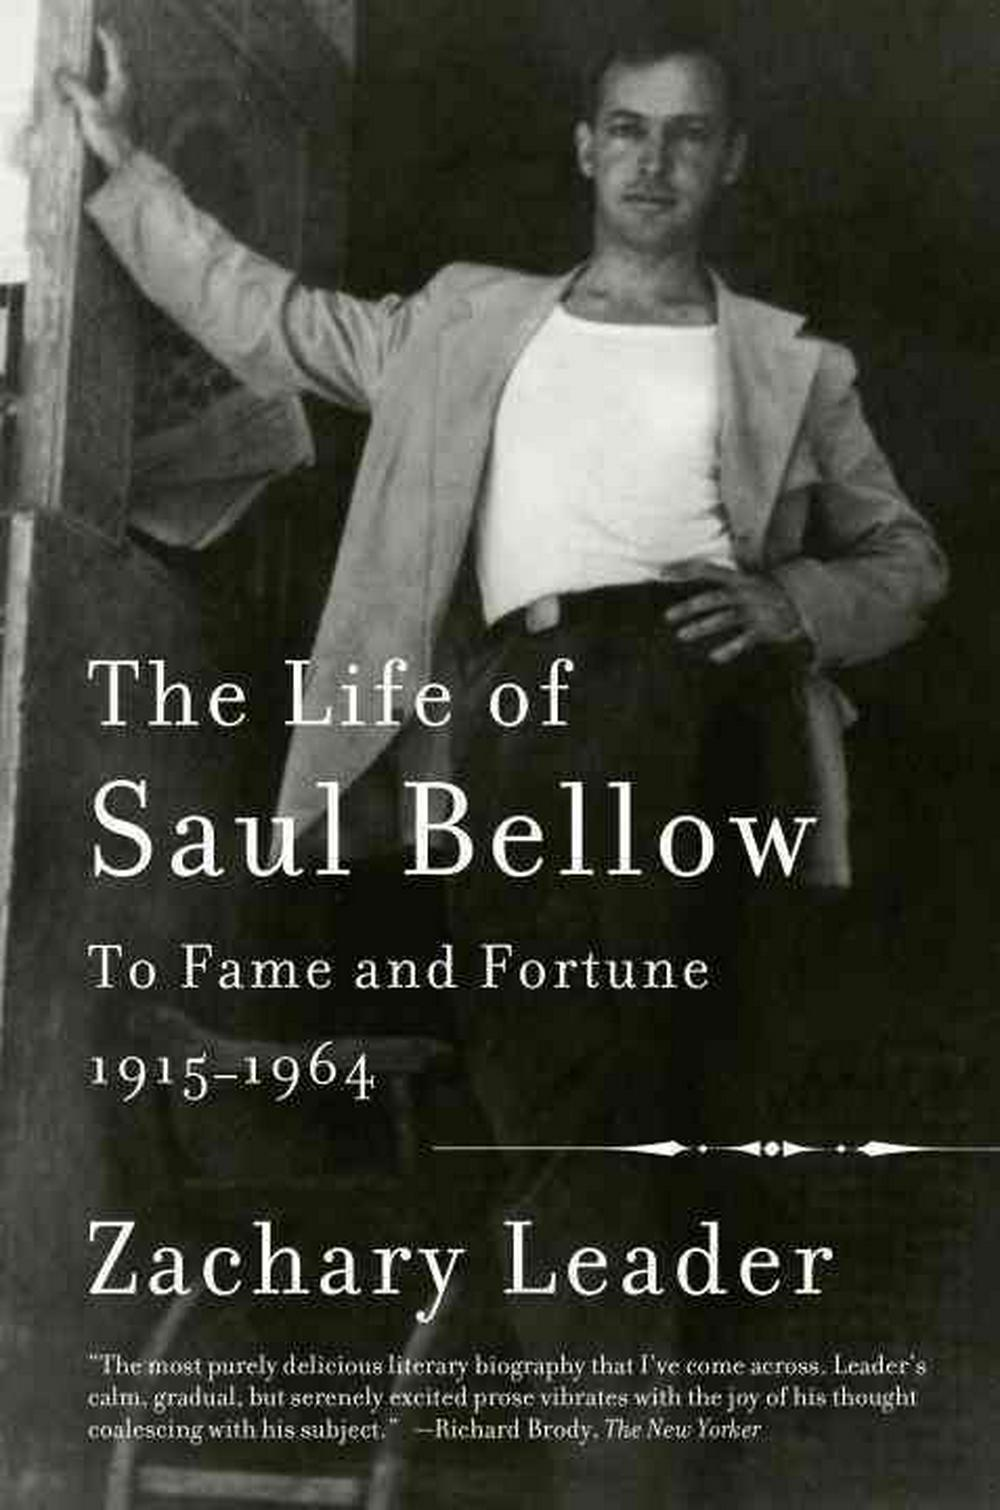 The Life of Saul BellowTo Fame and Fortune, 1915-1964